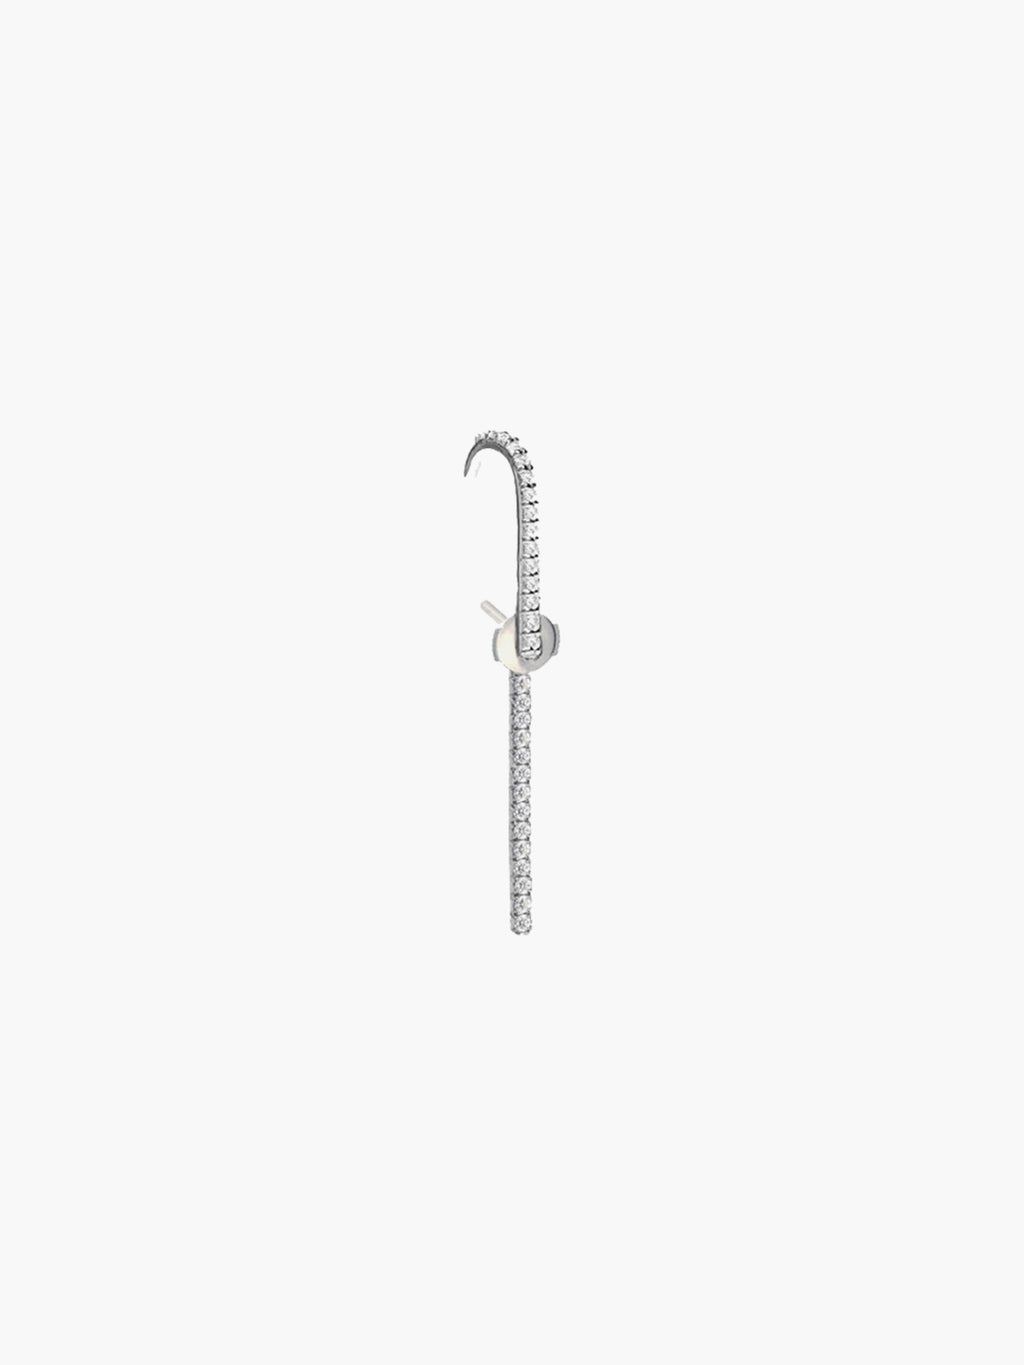 The Petite Ear Pin Diamonds | 18K White Gold